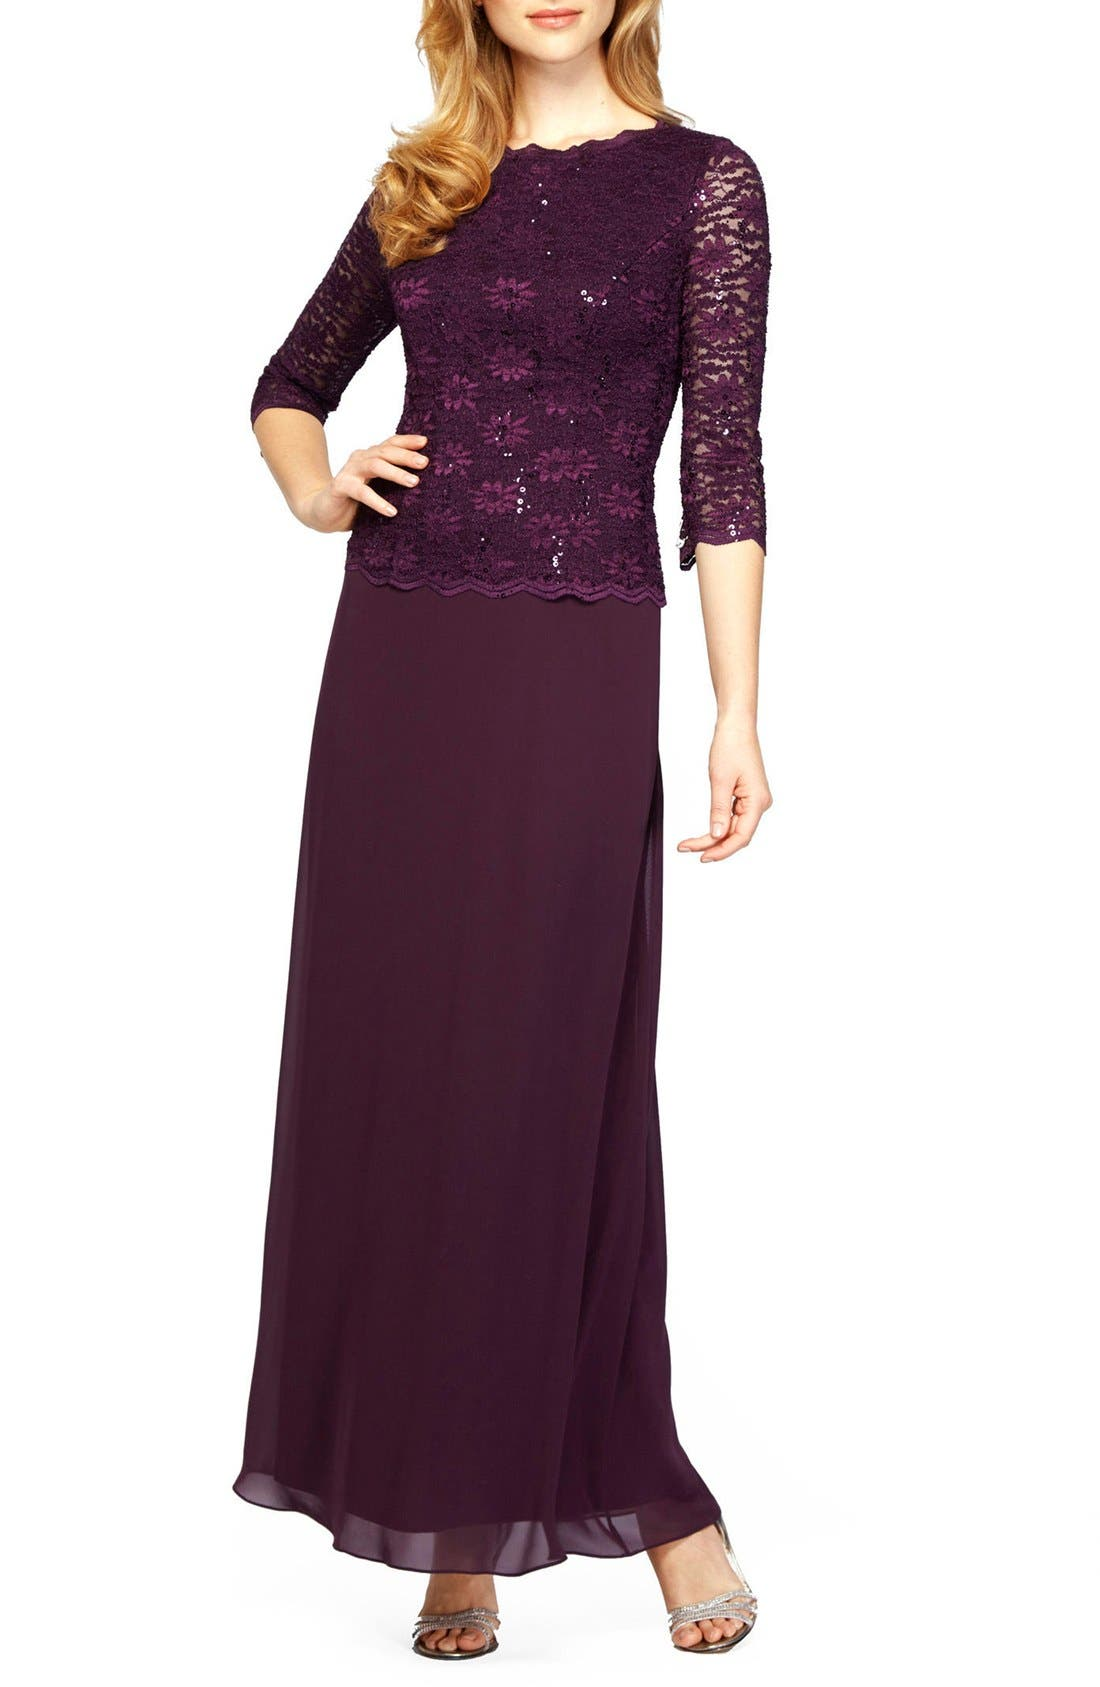 Alternate Image 1 Selected - Alex Evenings Sequin Lace & Chiffon Gown